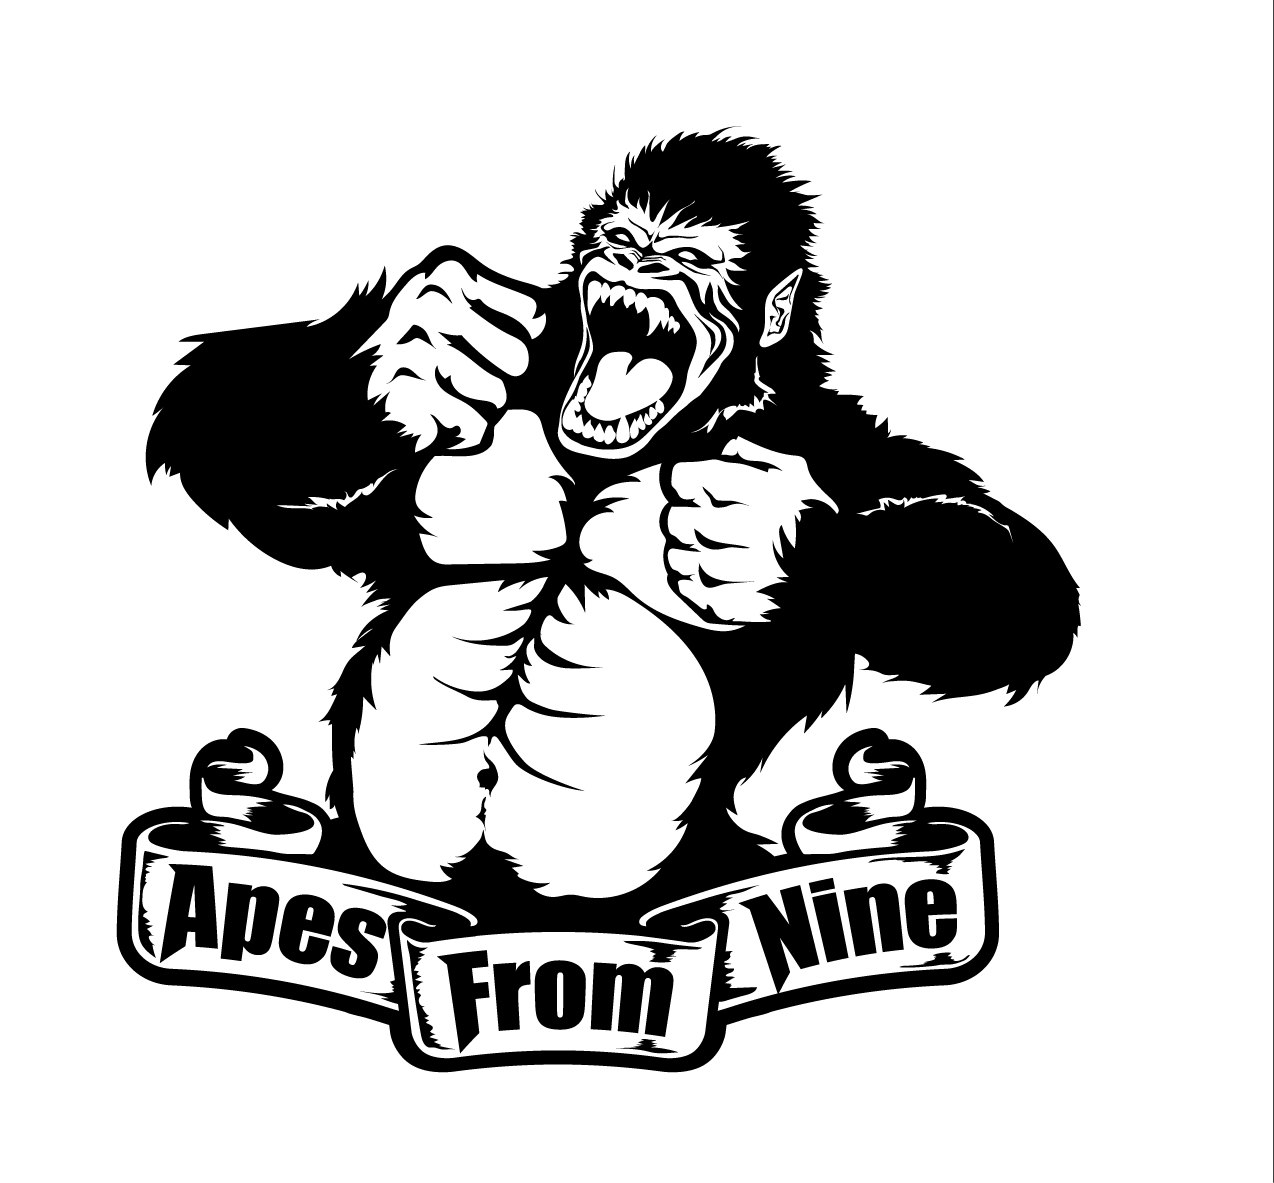 Apes From Nineのイメージ